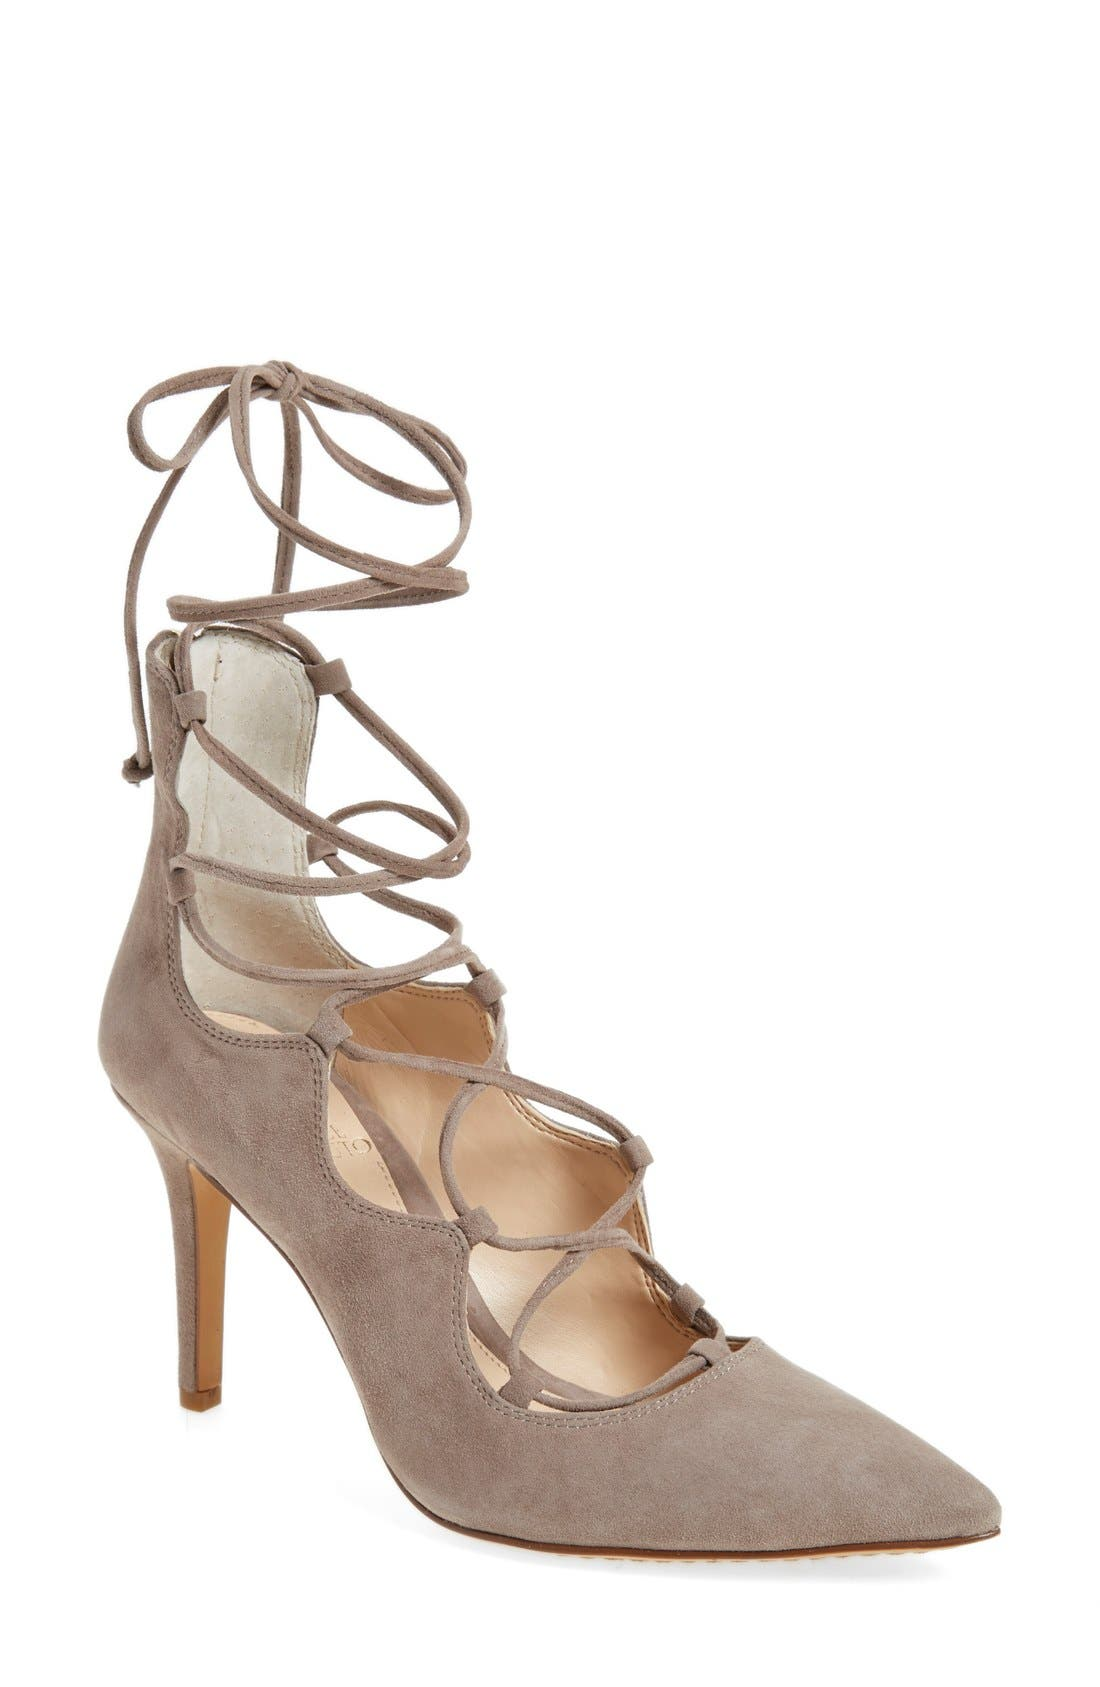 Alternate Image 1 Selected - Vince Camuto 'Barsha' Lace-up Pump (Women) (Nordstrom Exclusive)